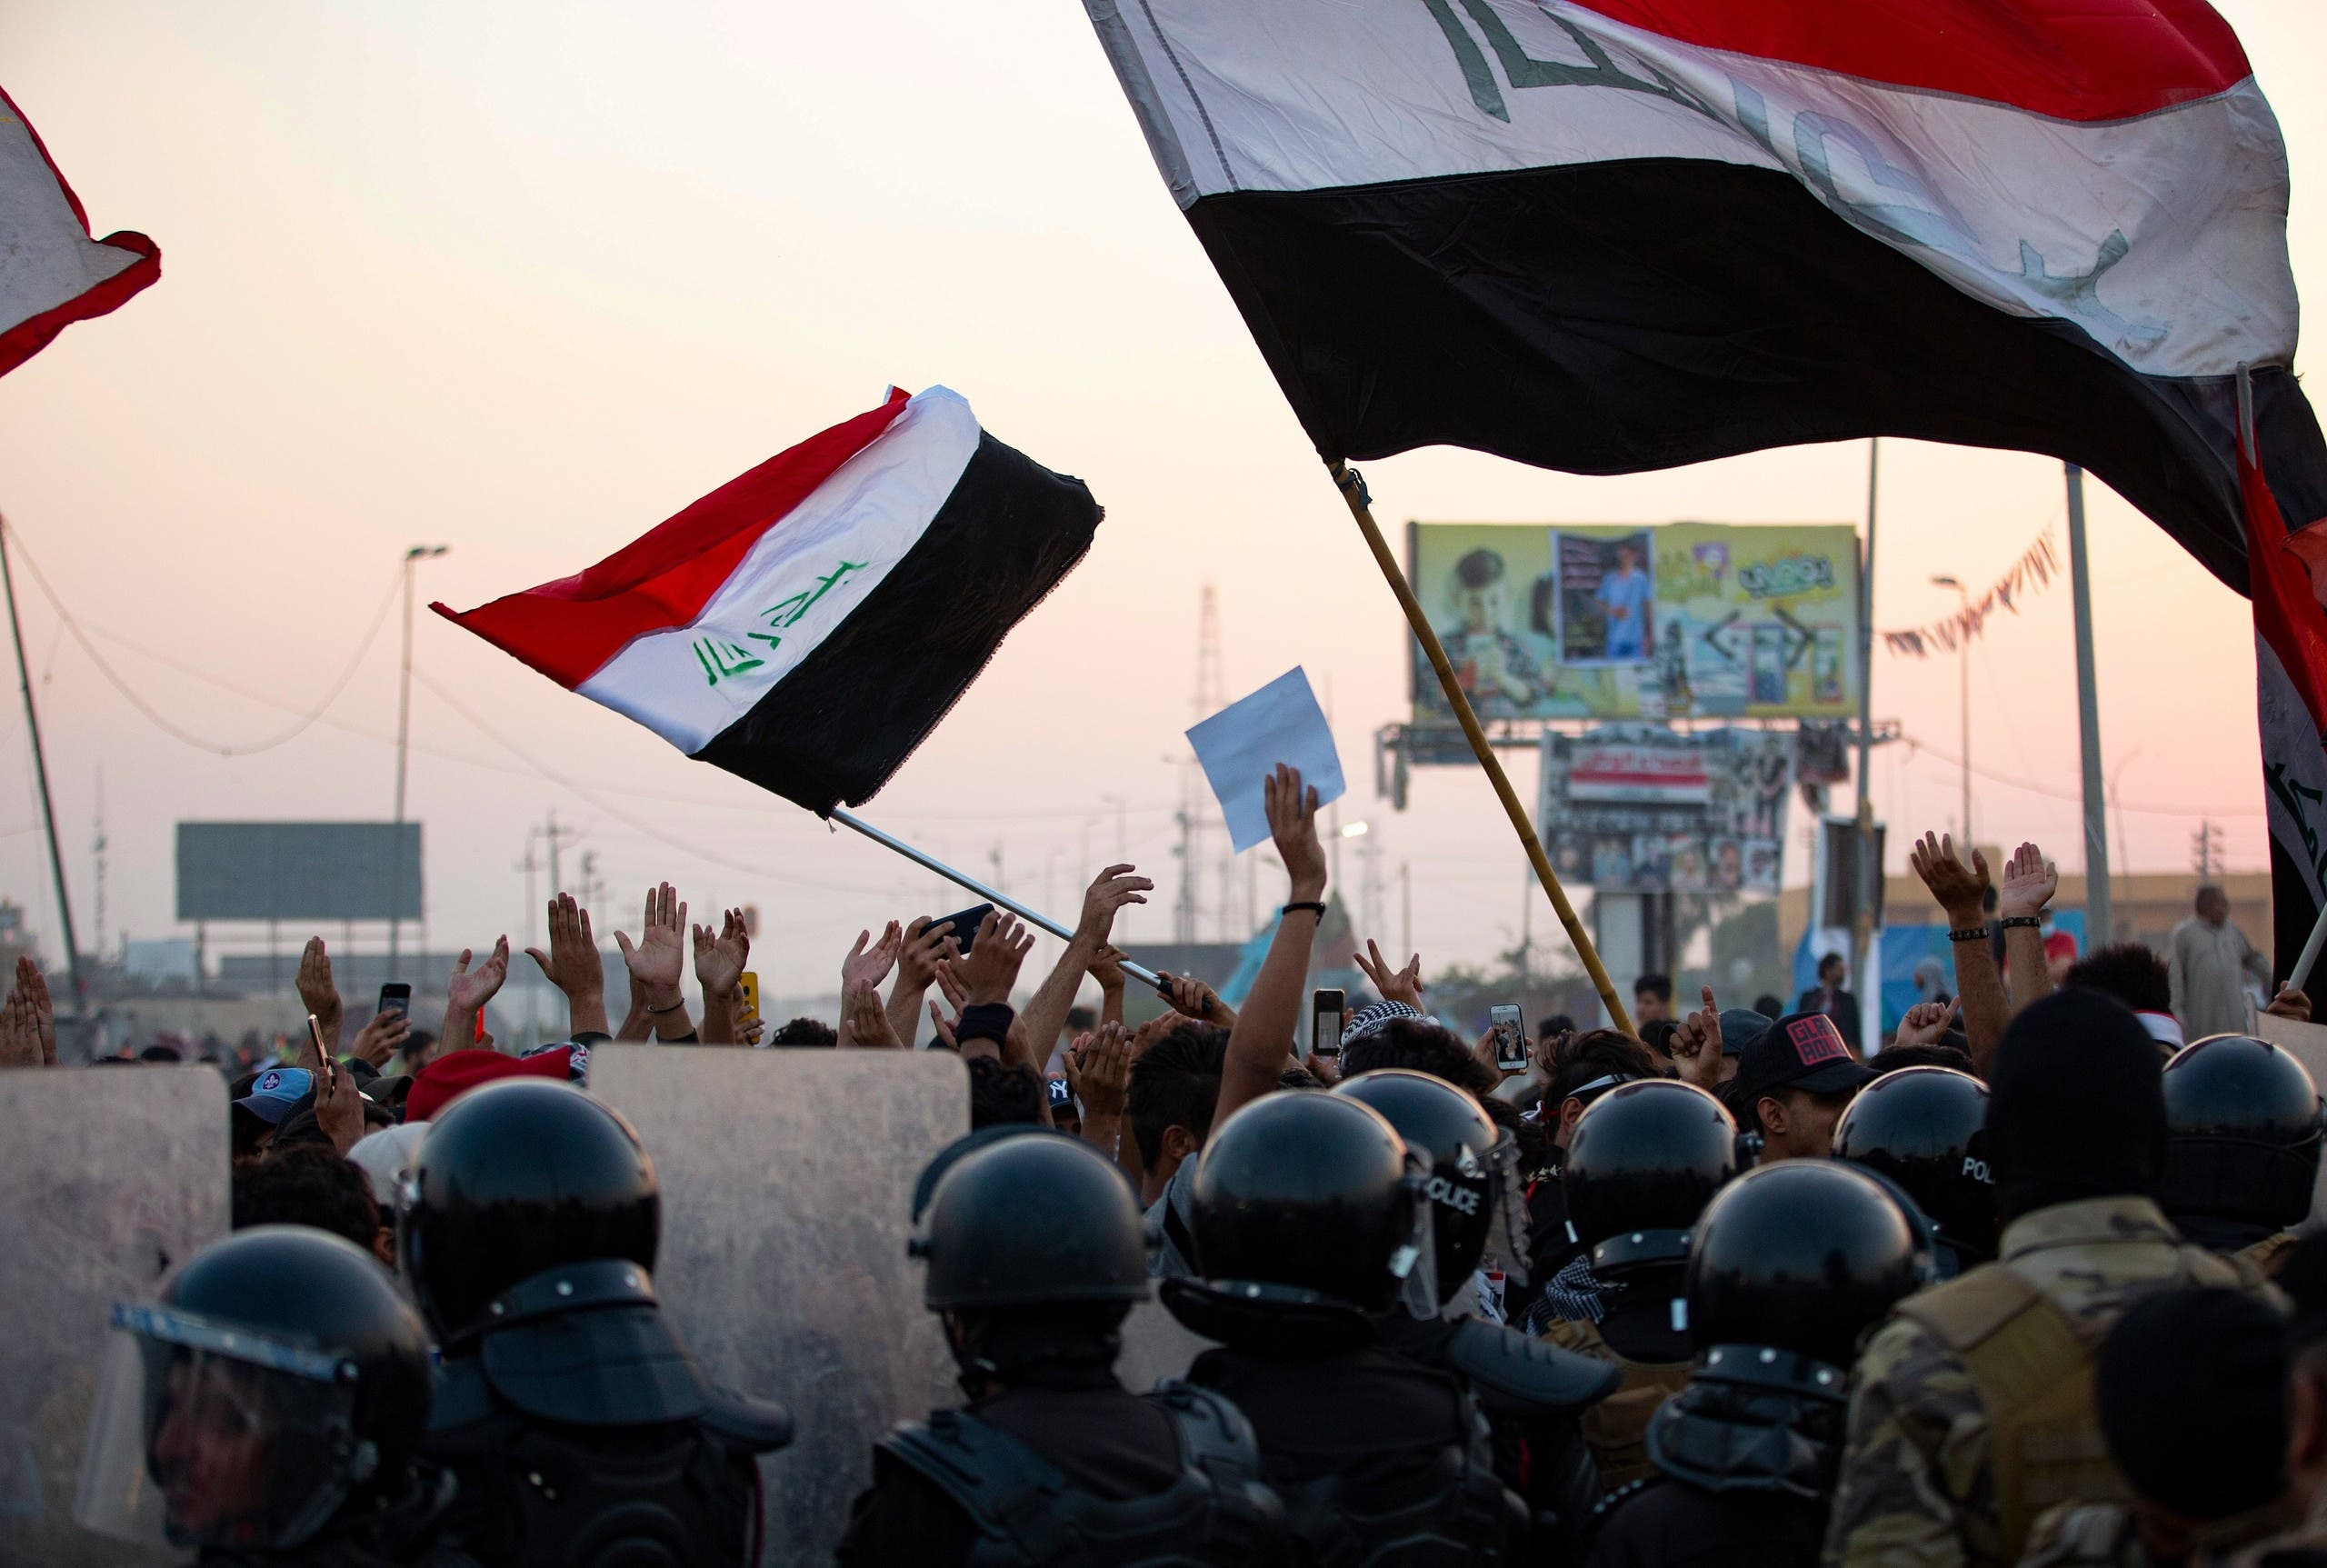 Iraqi anti-government protesters confront security forces as the latter attempt to break up a demonstration, remove their tents and reopen roads, in the southern city of Basra, on October 31, 2020. (AFP)